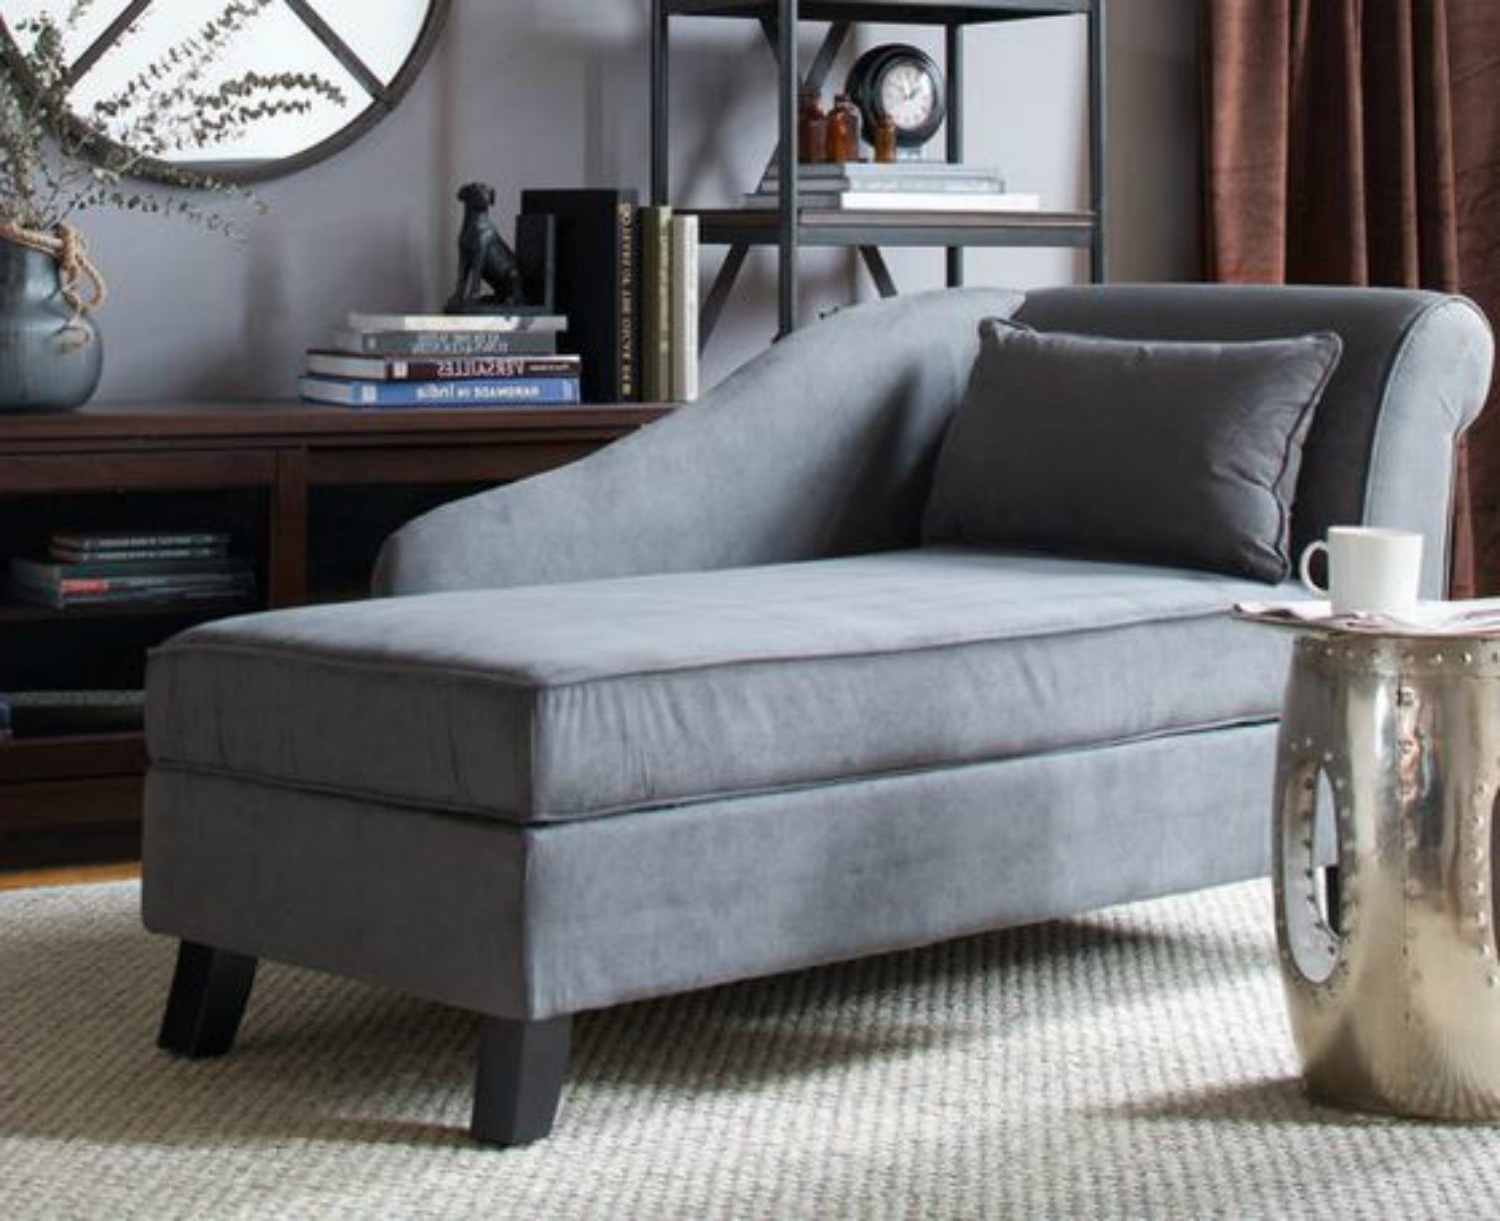 Popular Amazon: Storage Chaise Lounge Chair  This Microfiber Pertaining To Chaise Lounge Chairs With Storage (View 13 of 15)